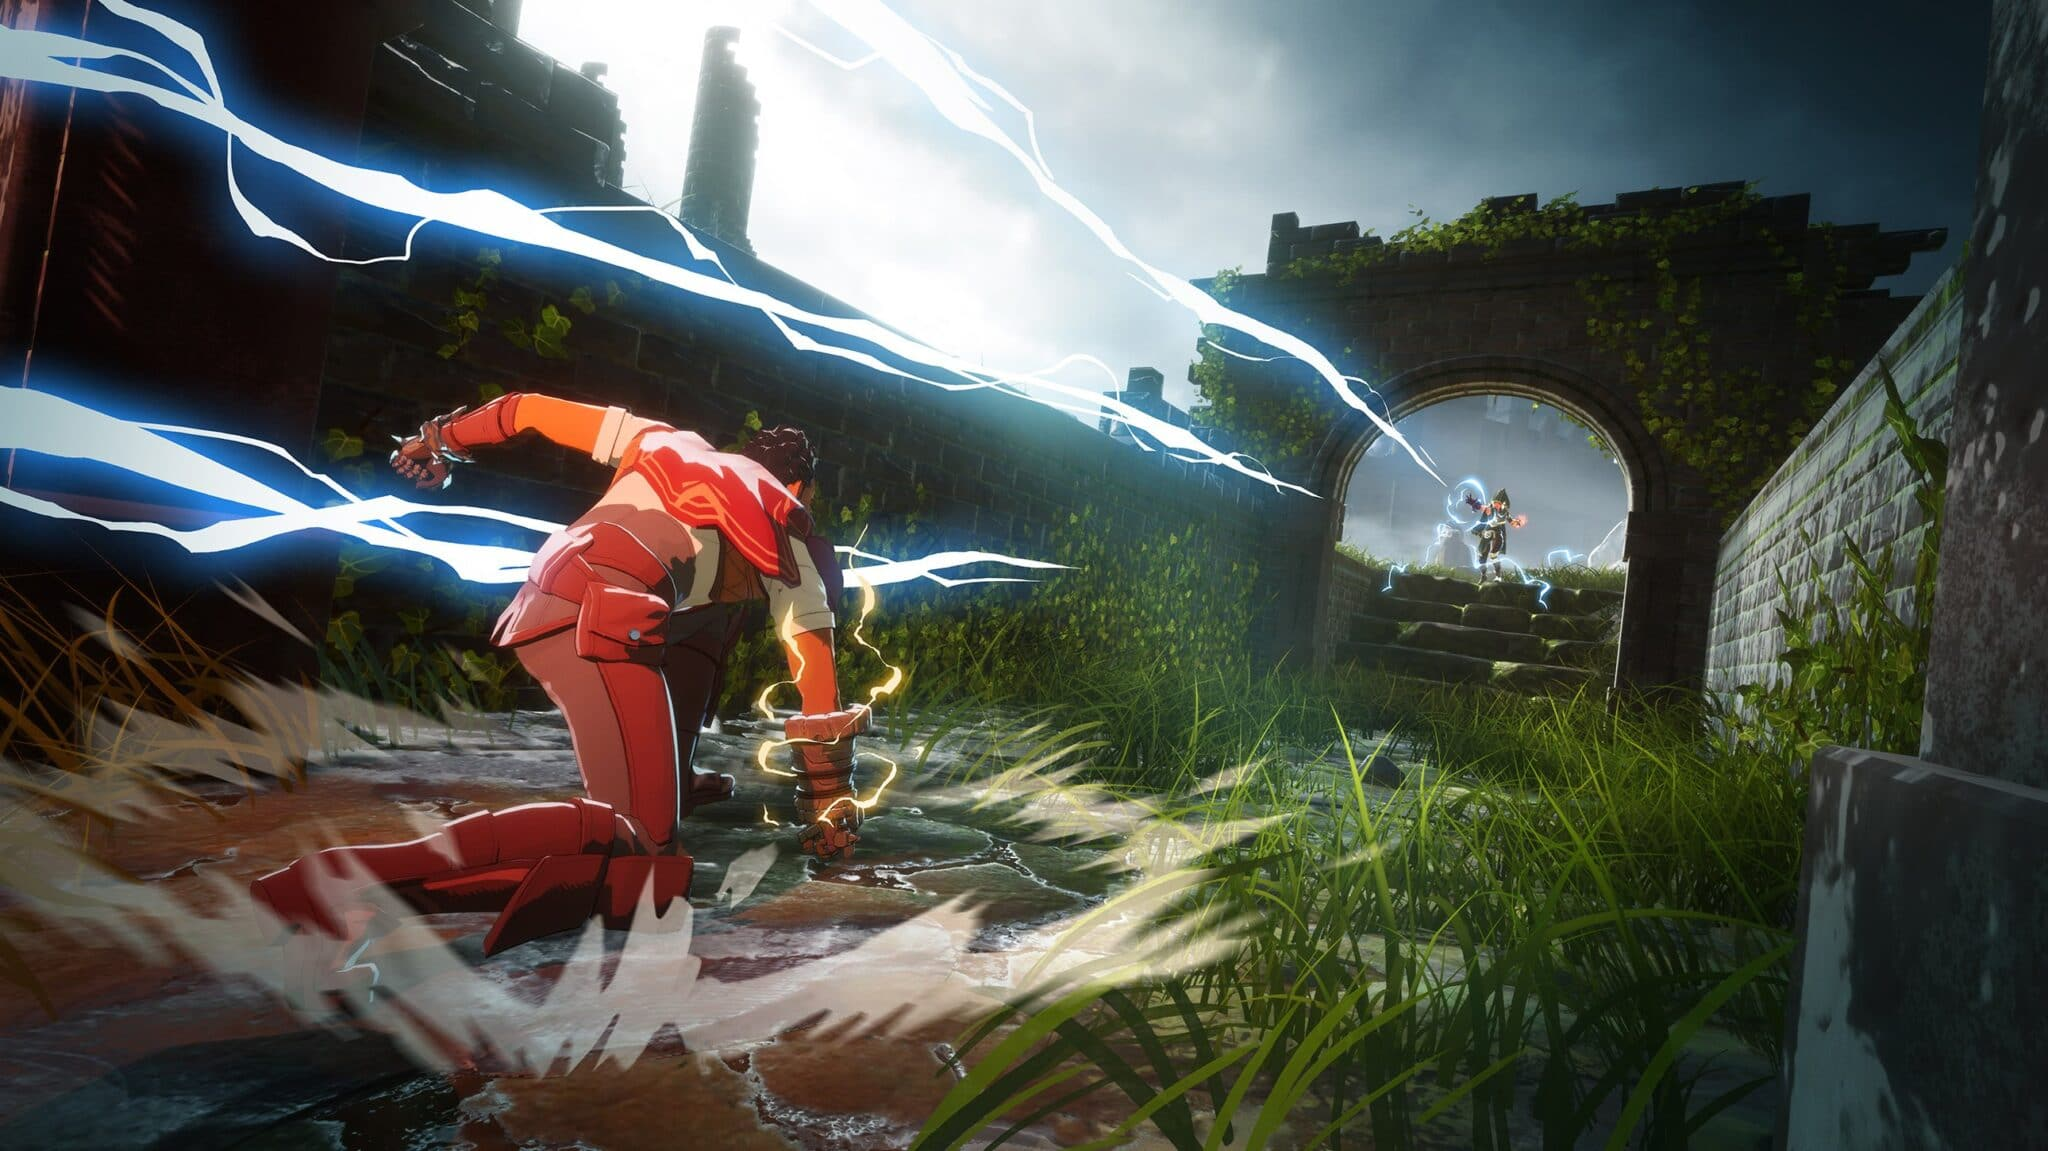 Spellslingin' Tips and Tricks To Give You The Edge in Spellbreak